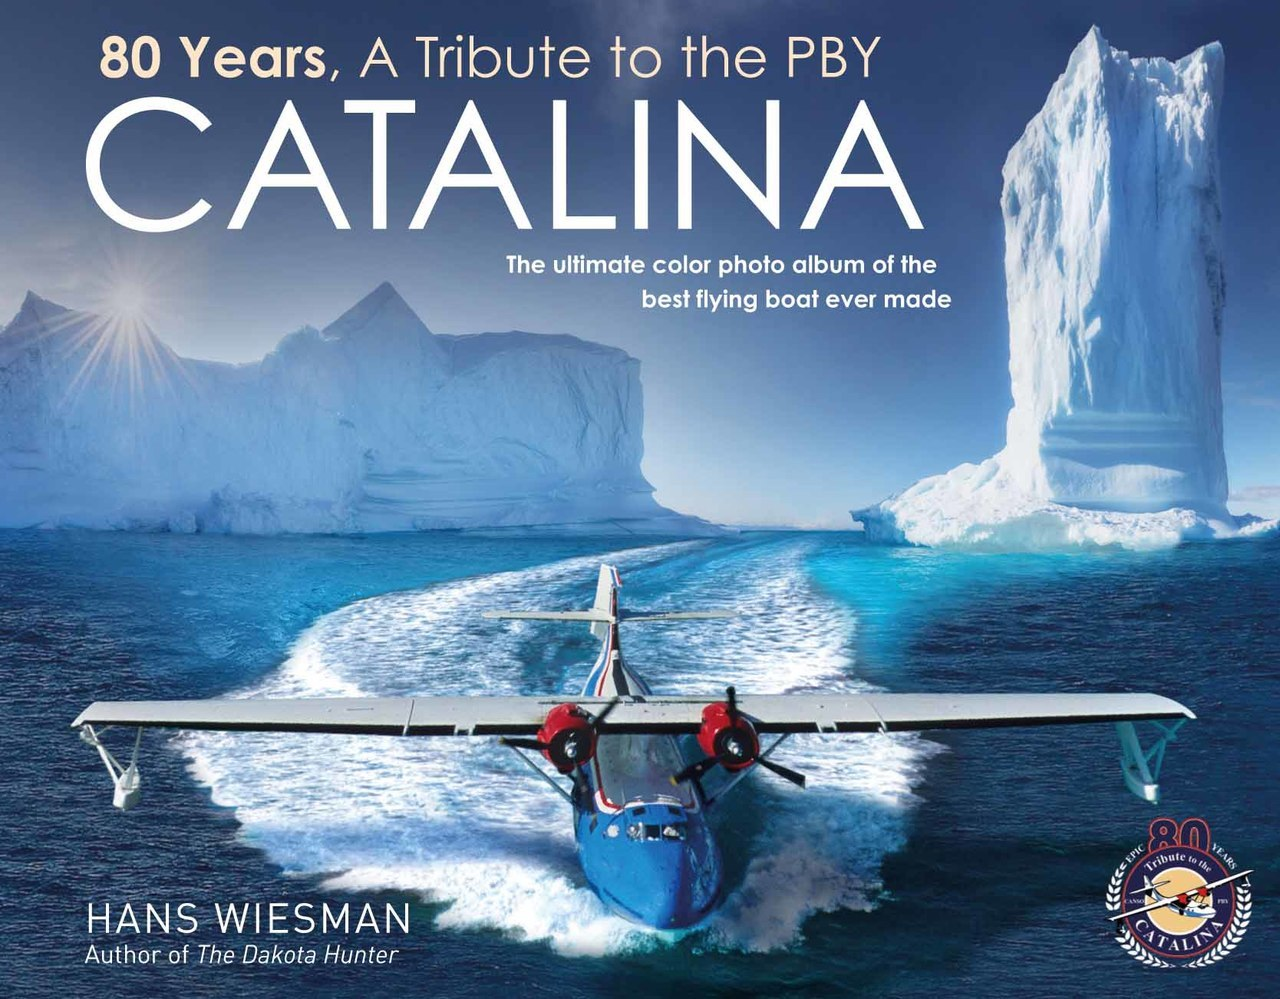 80 Years, A Tribute to the PBY Catalina